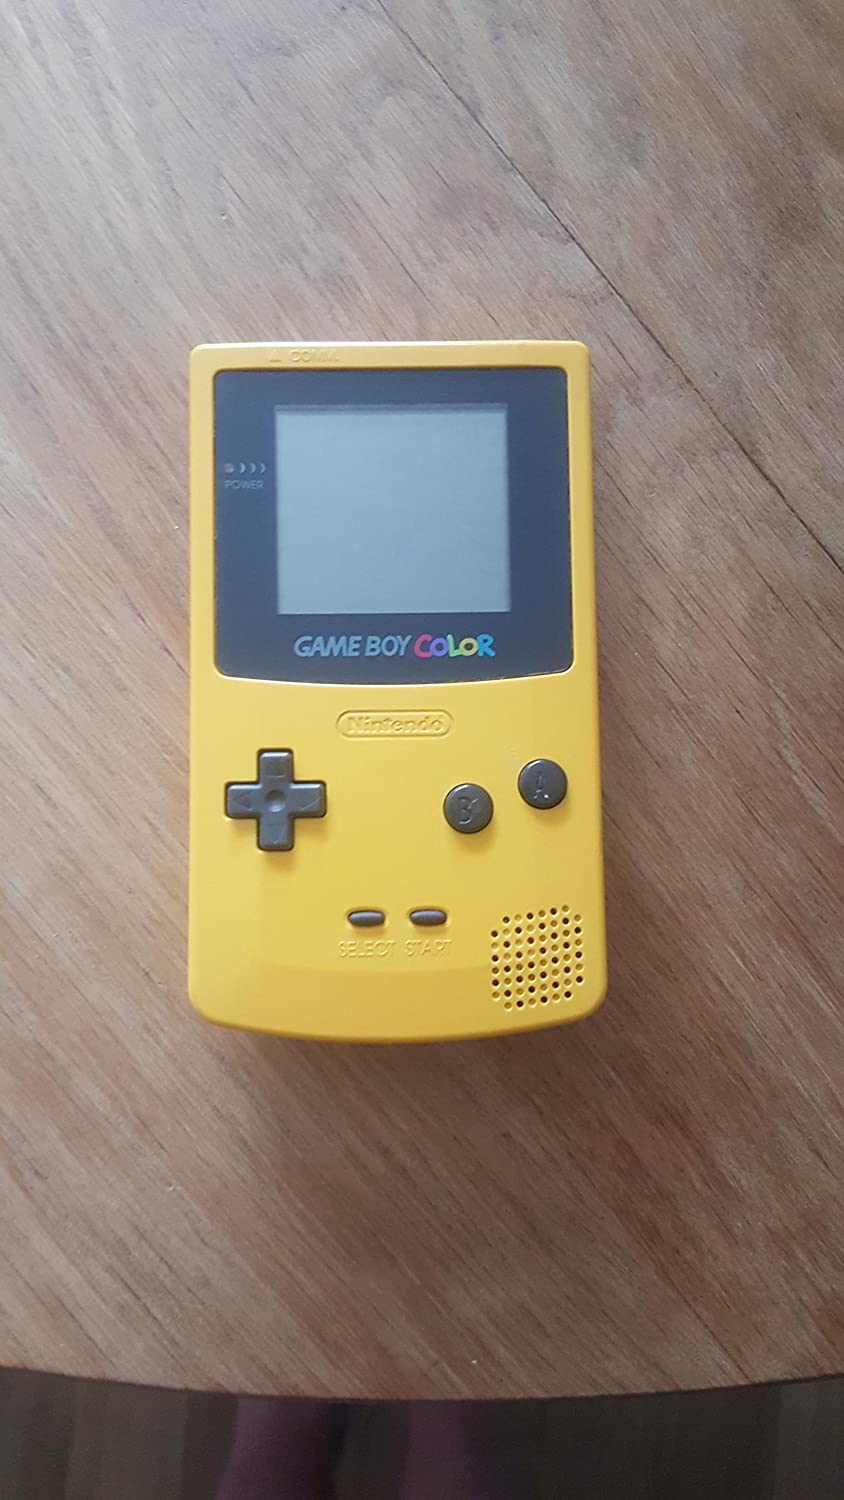 Gameboy color screen mod - Amazon Com Game Boy Color Atomic Purple Nintendo Game Boy Color Video Games